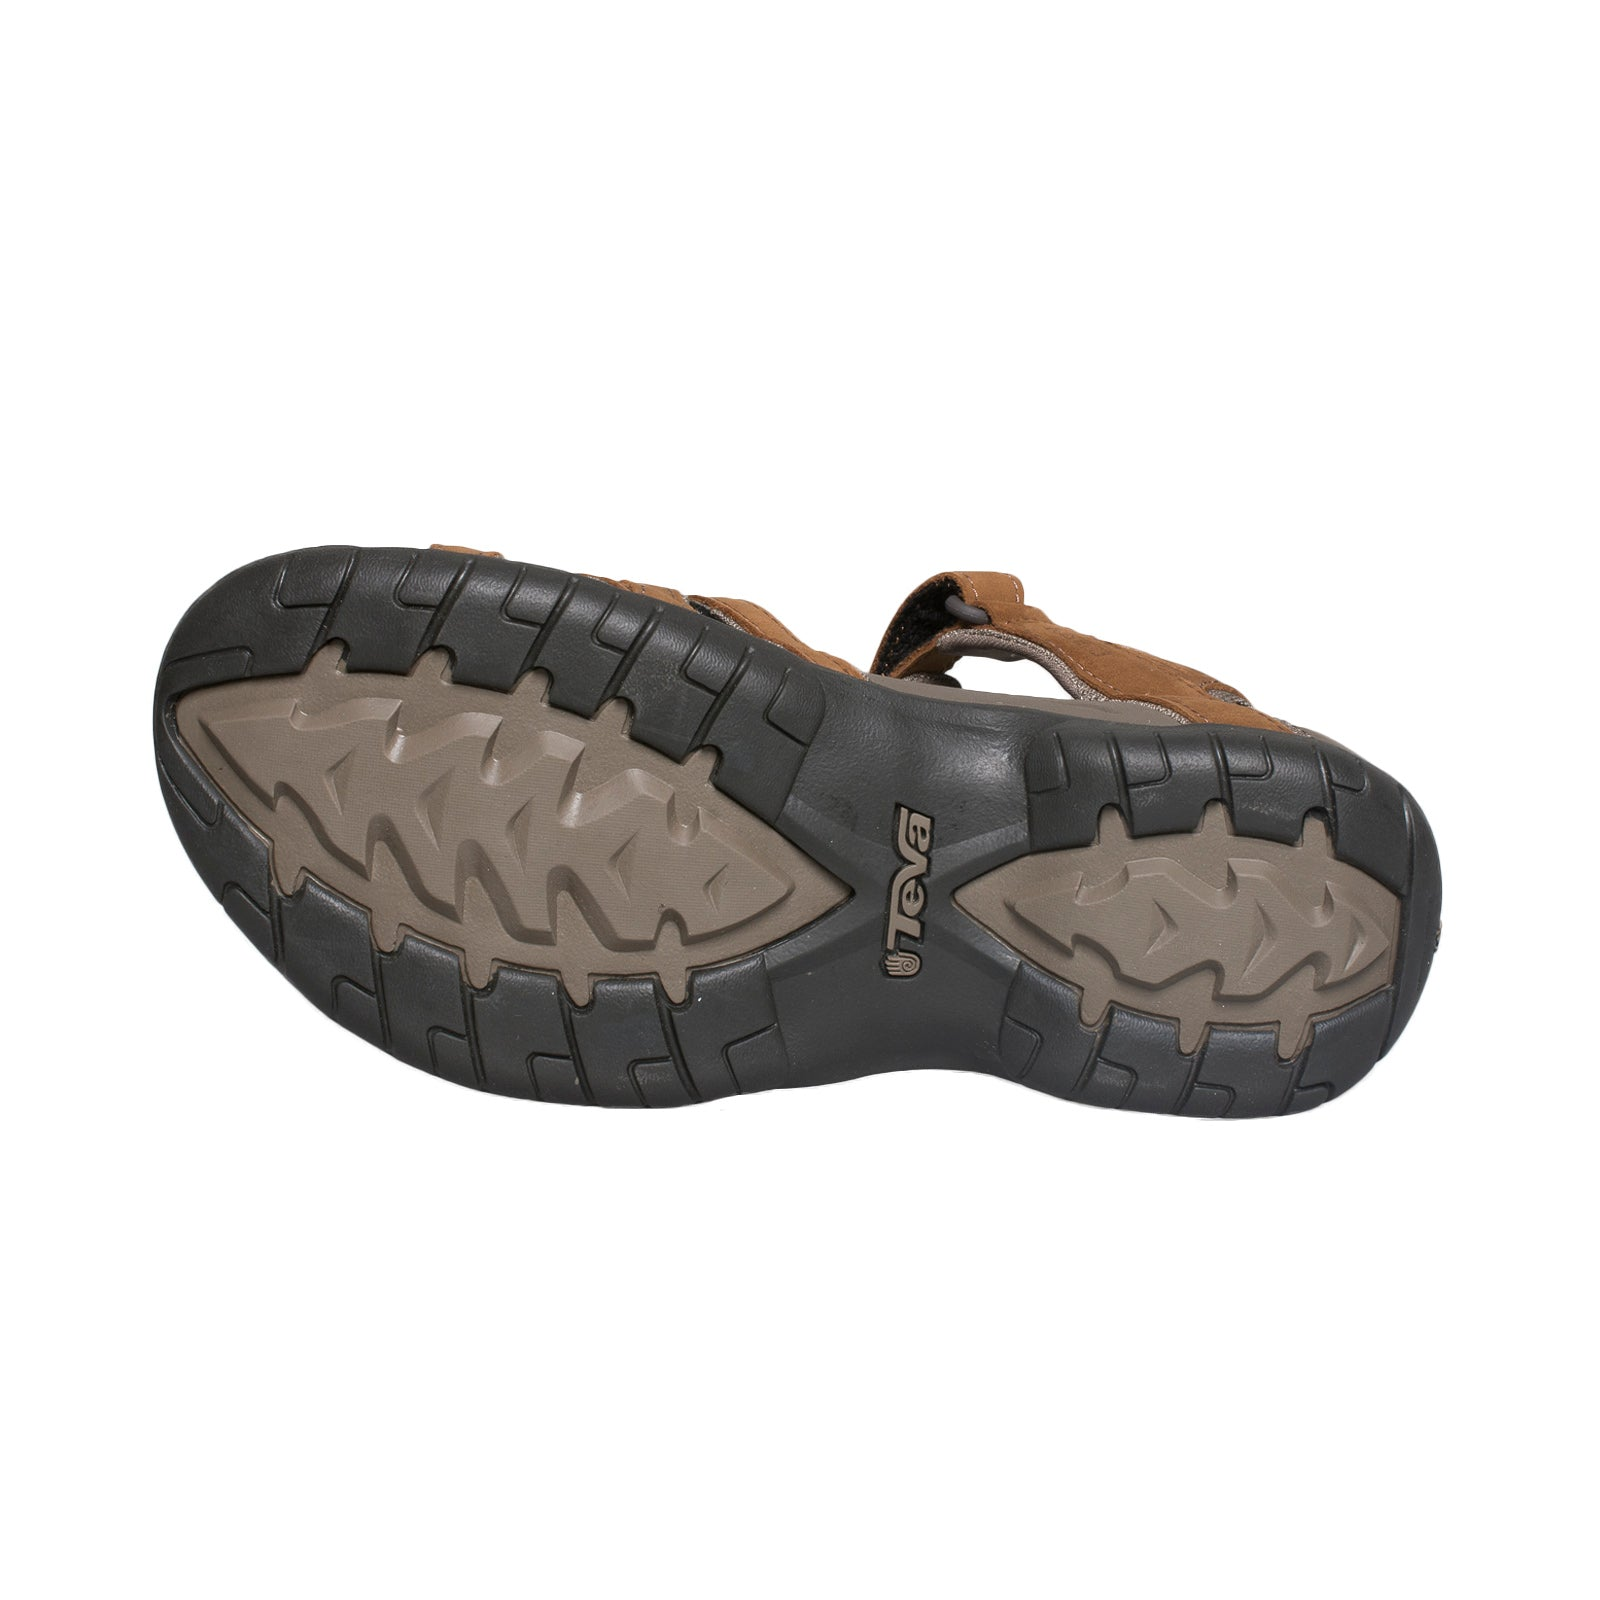 602348ddfa03 Teva Tirra Leather Rust Sandals - Women s - MyCozyBoots